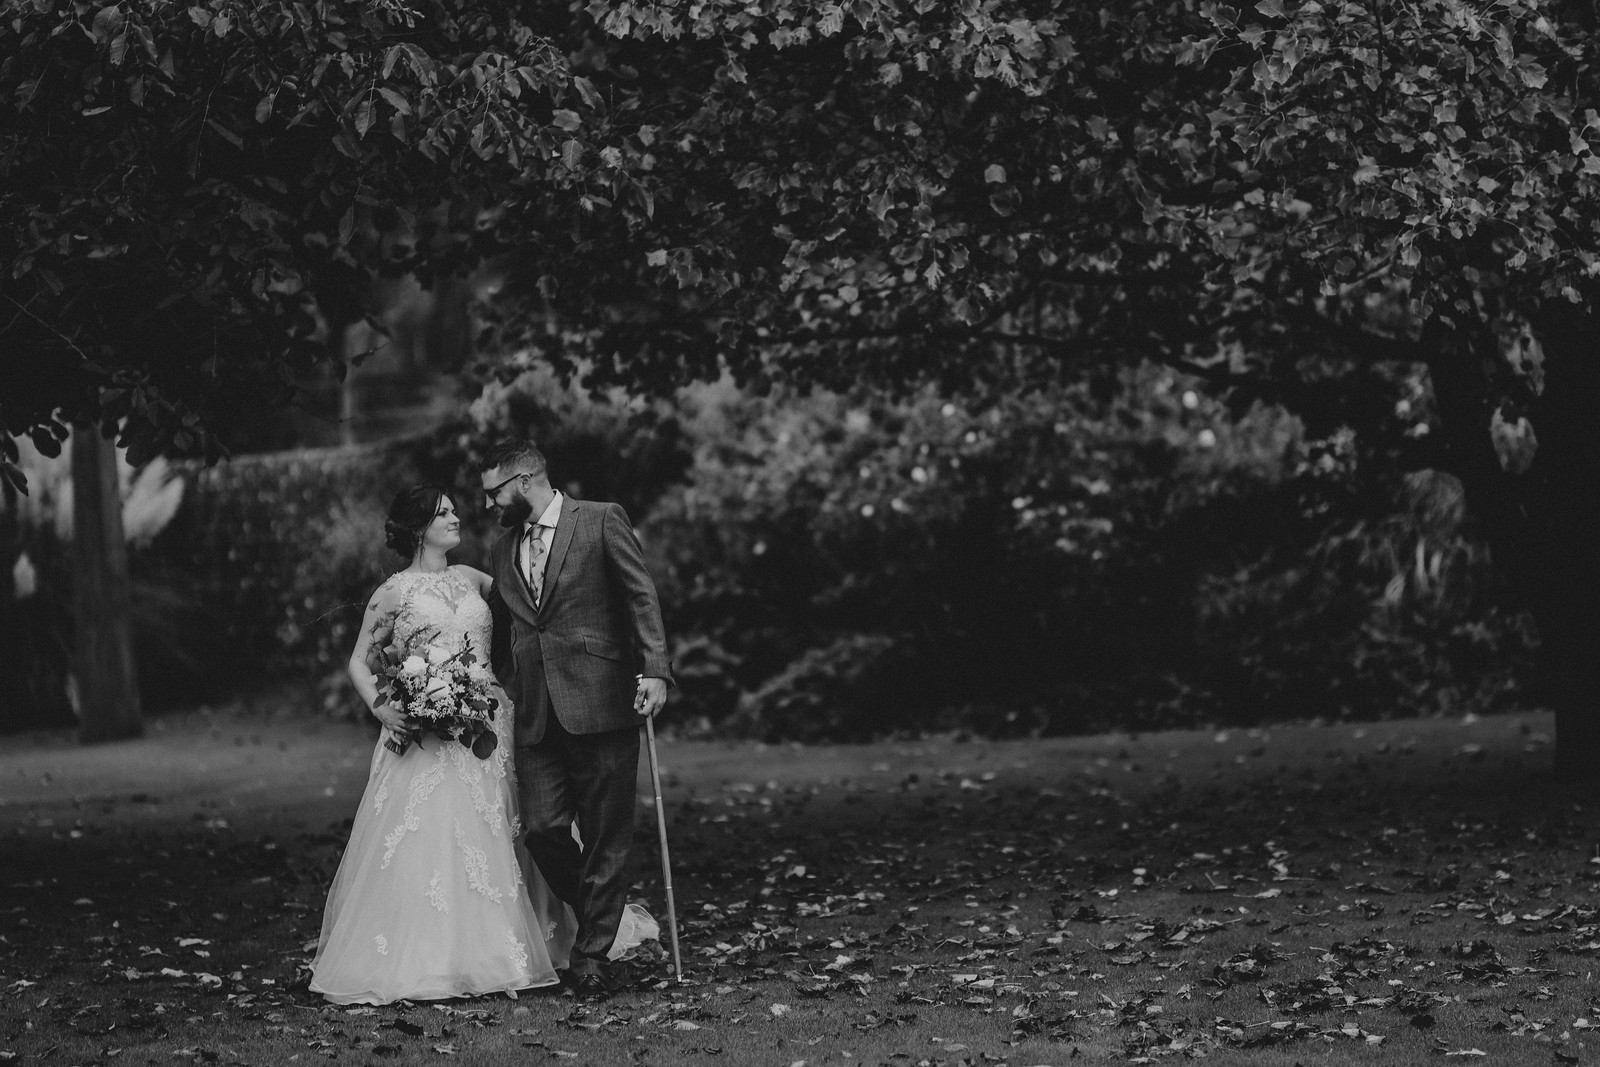 Bride and groom in a beautiful background